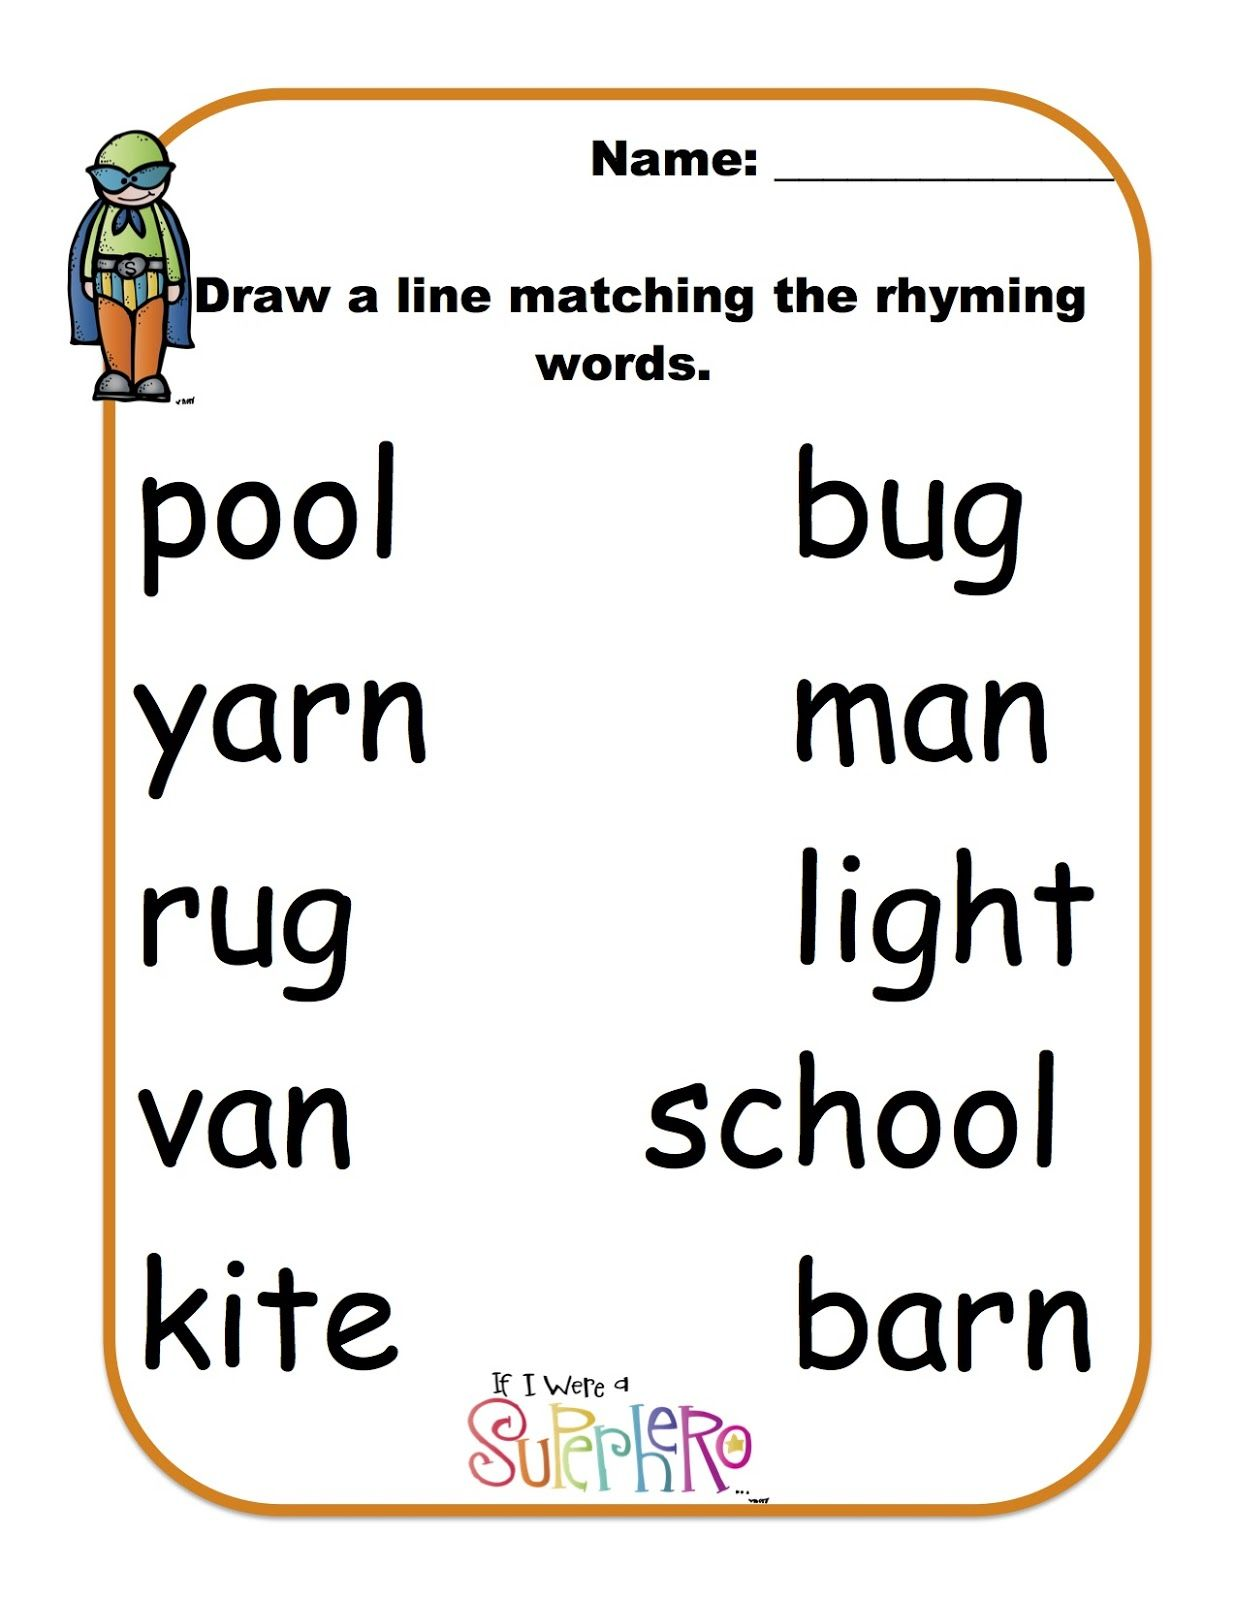 Worksheet Rhyming Words Kindergarten 1000 images about rhyming words on pinterest dr seuss activity games and student centered resources